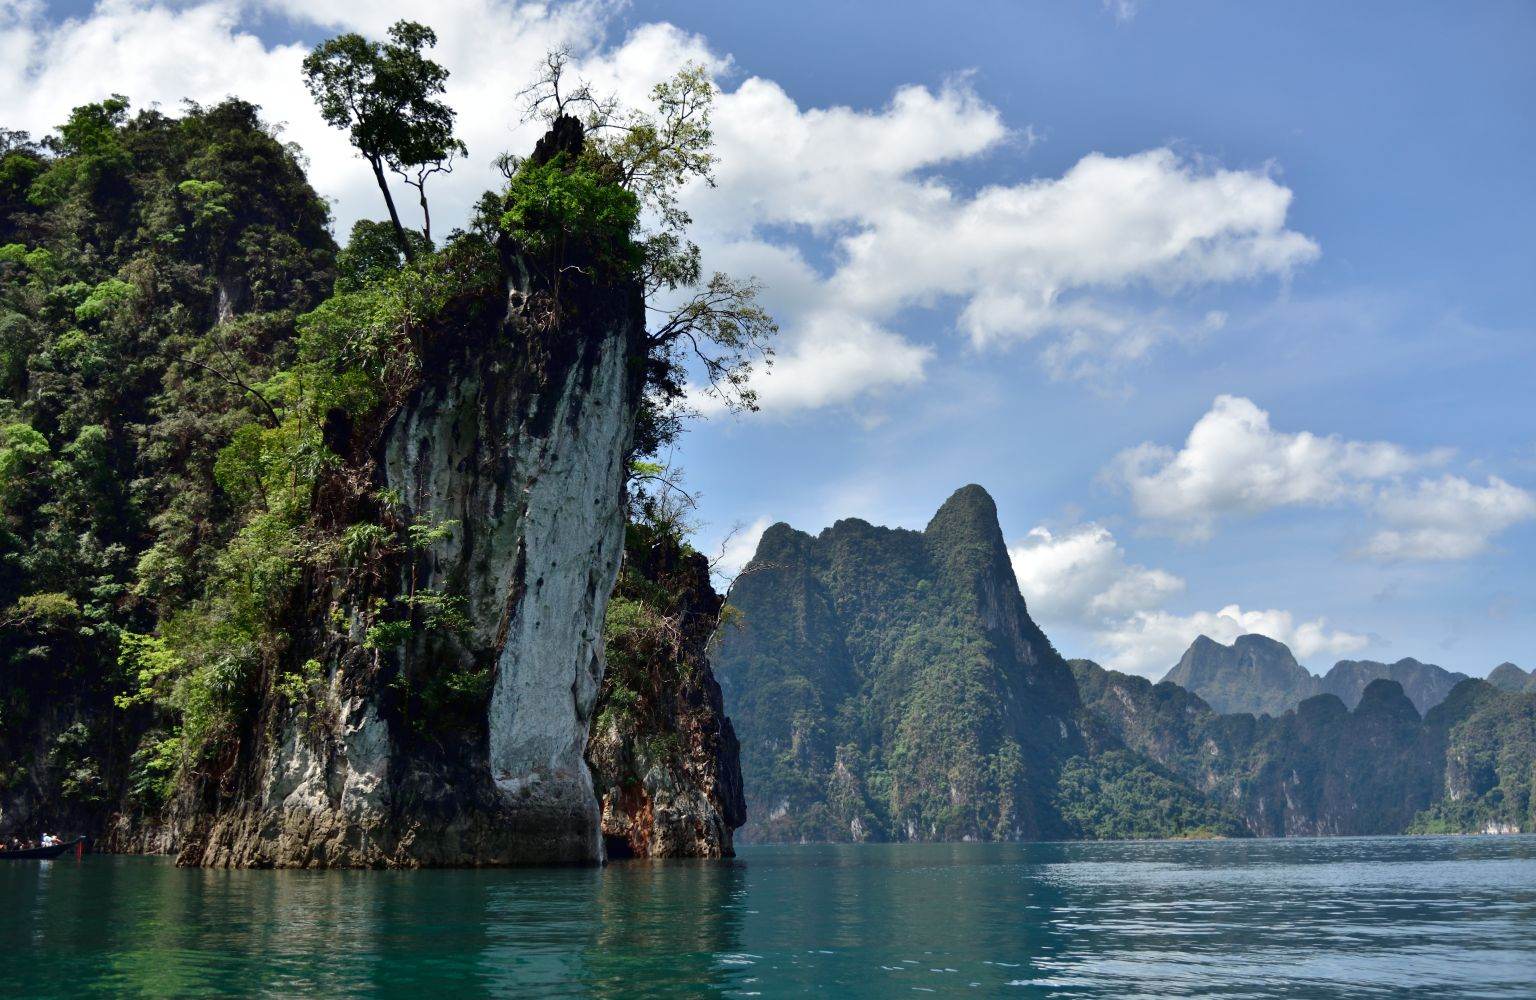 Limestone cliff comes out of water, Cheow Lan Lake, Khao Sok